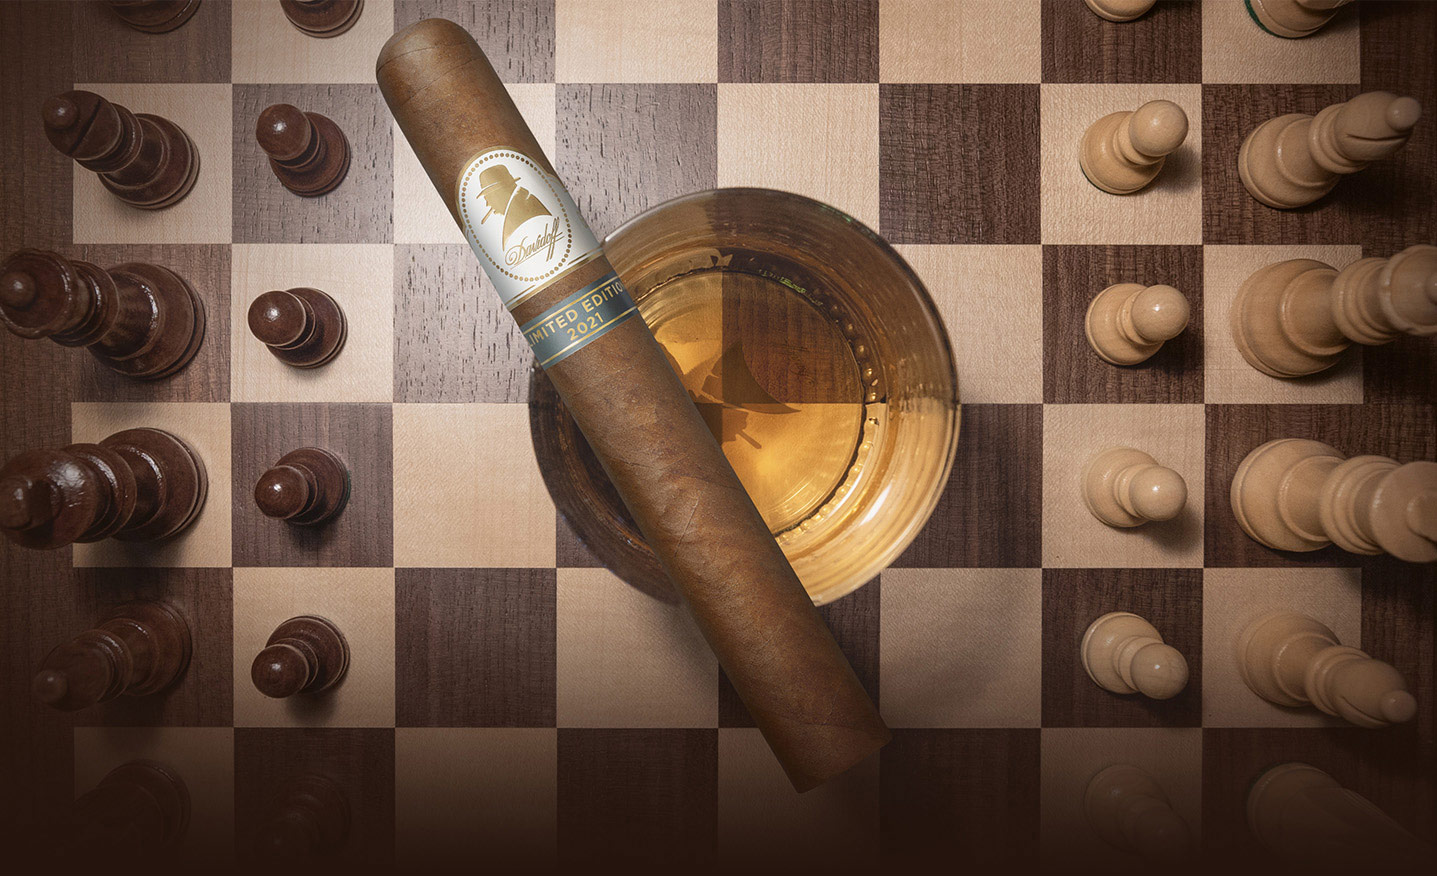 The Davidoff Winston Churchill Cigar 2021 with a whisky glass